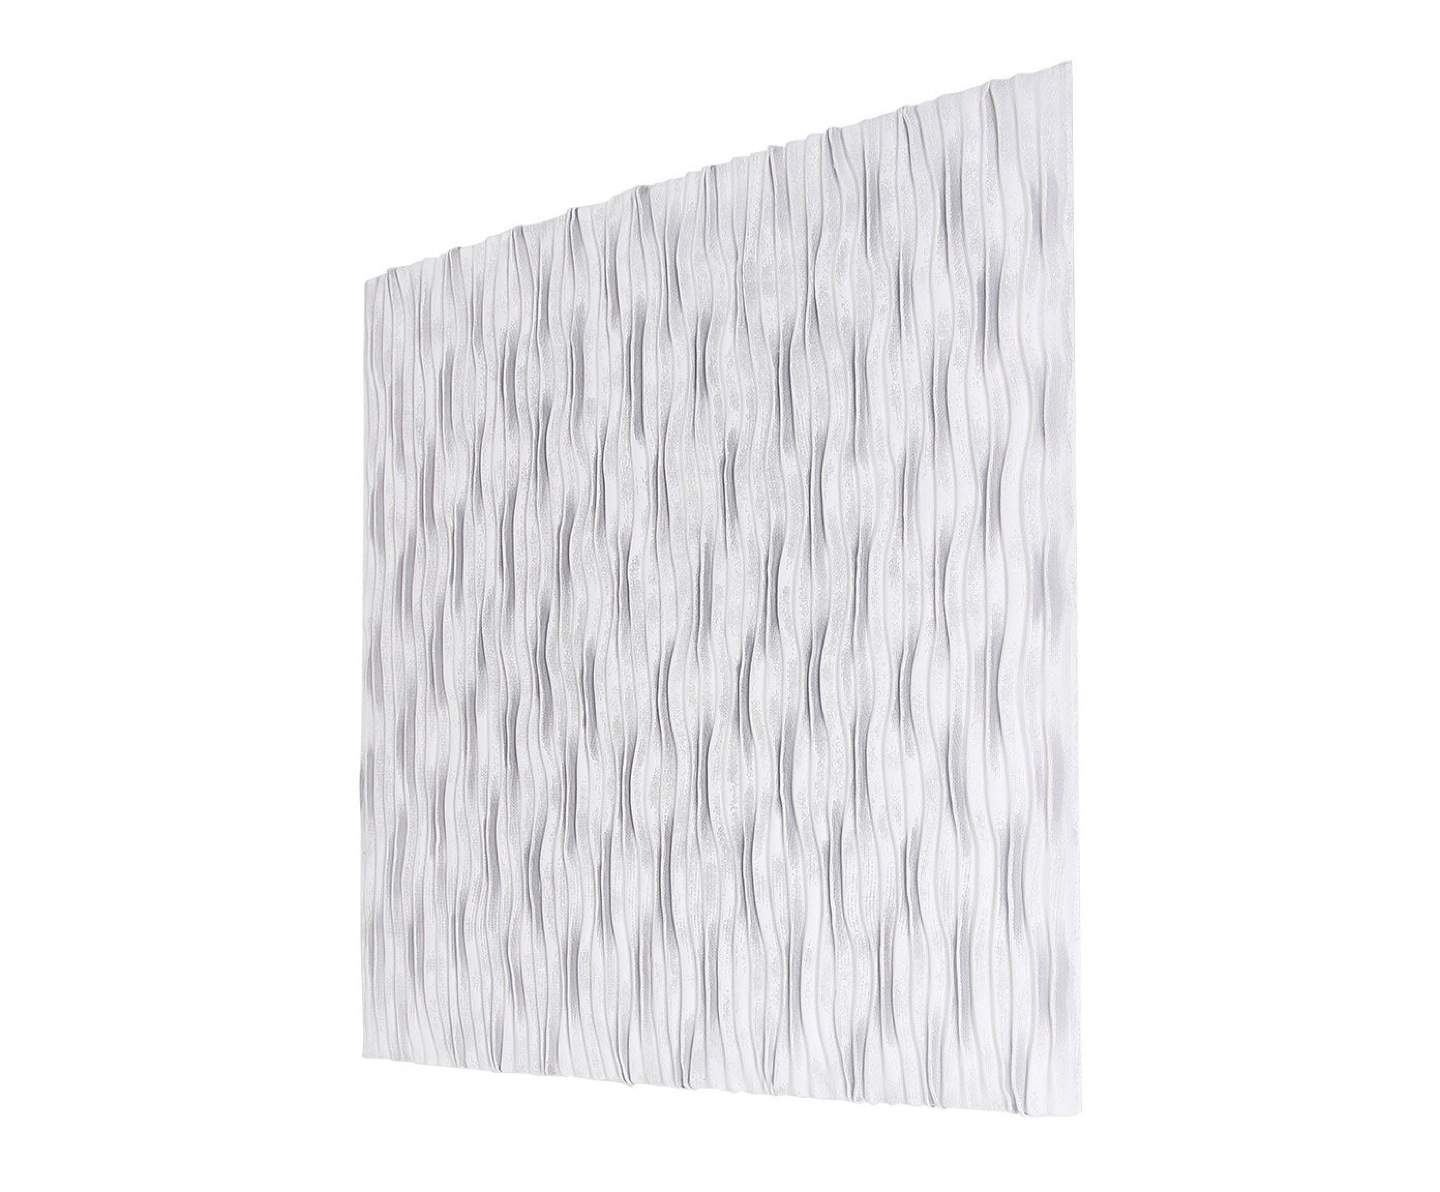 Planum Plafón/Wall Lamp Square 96x96cm LED